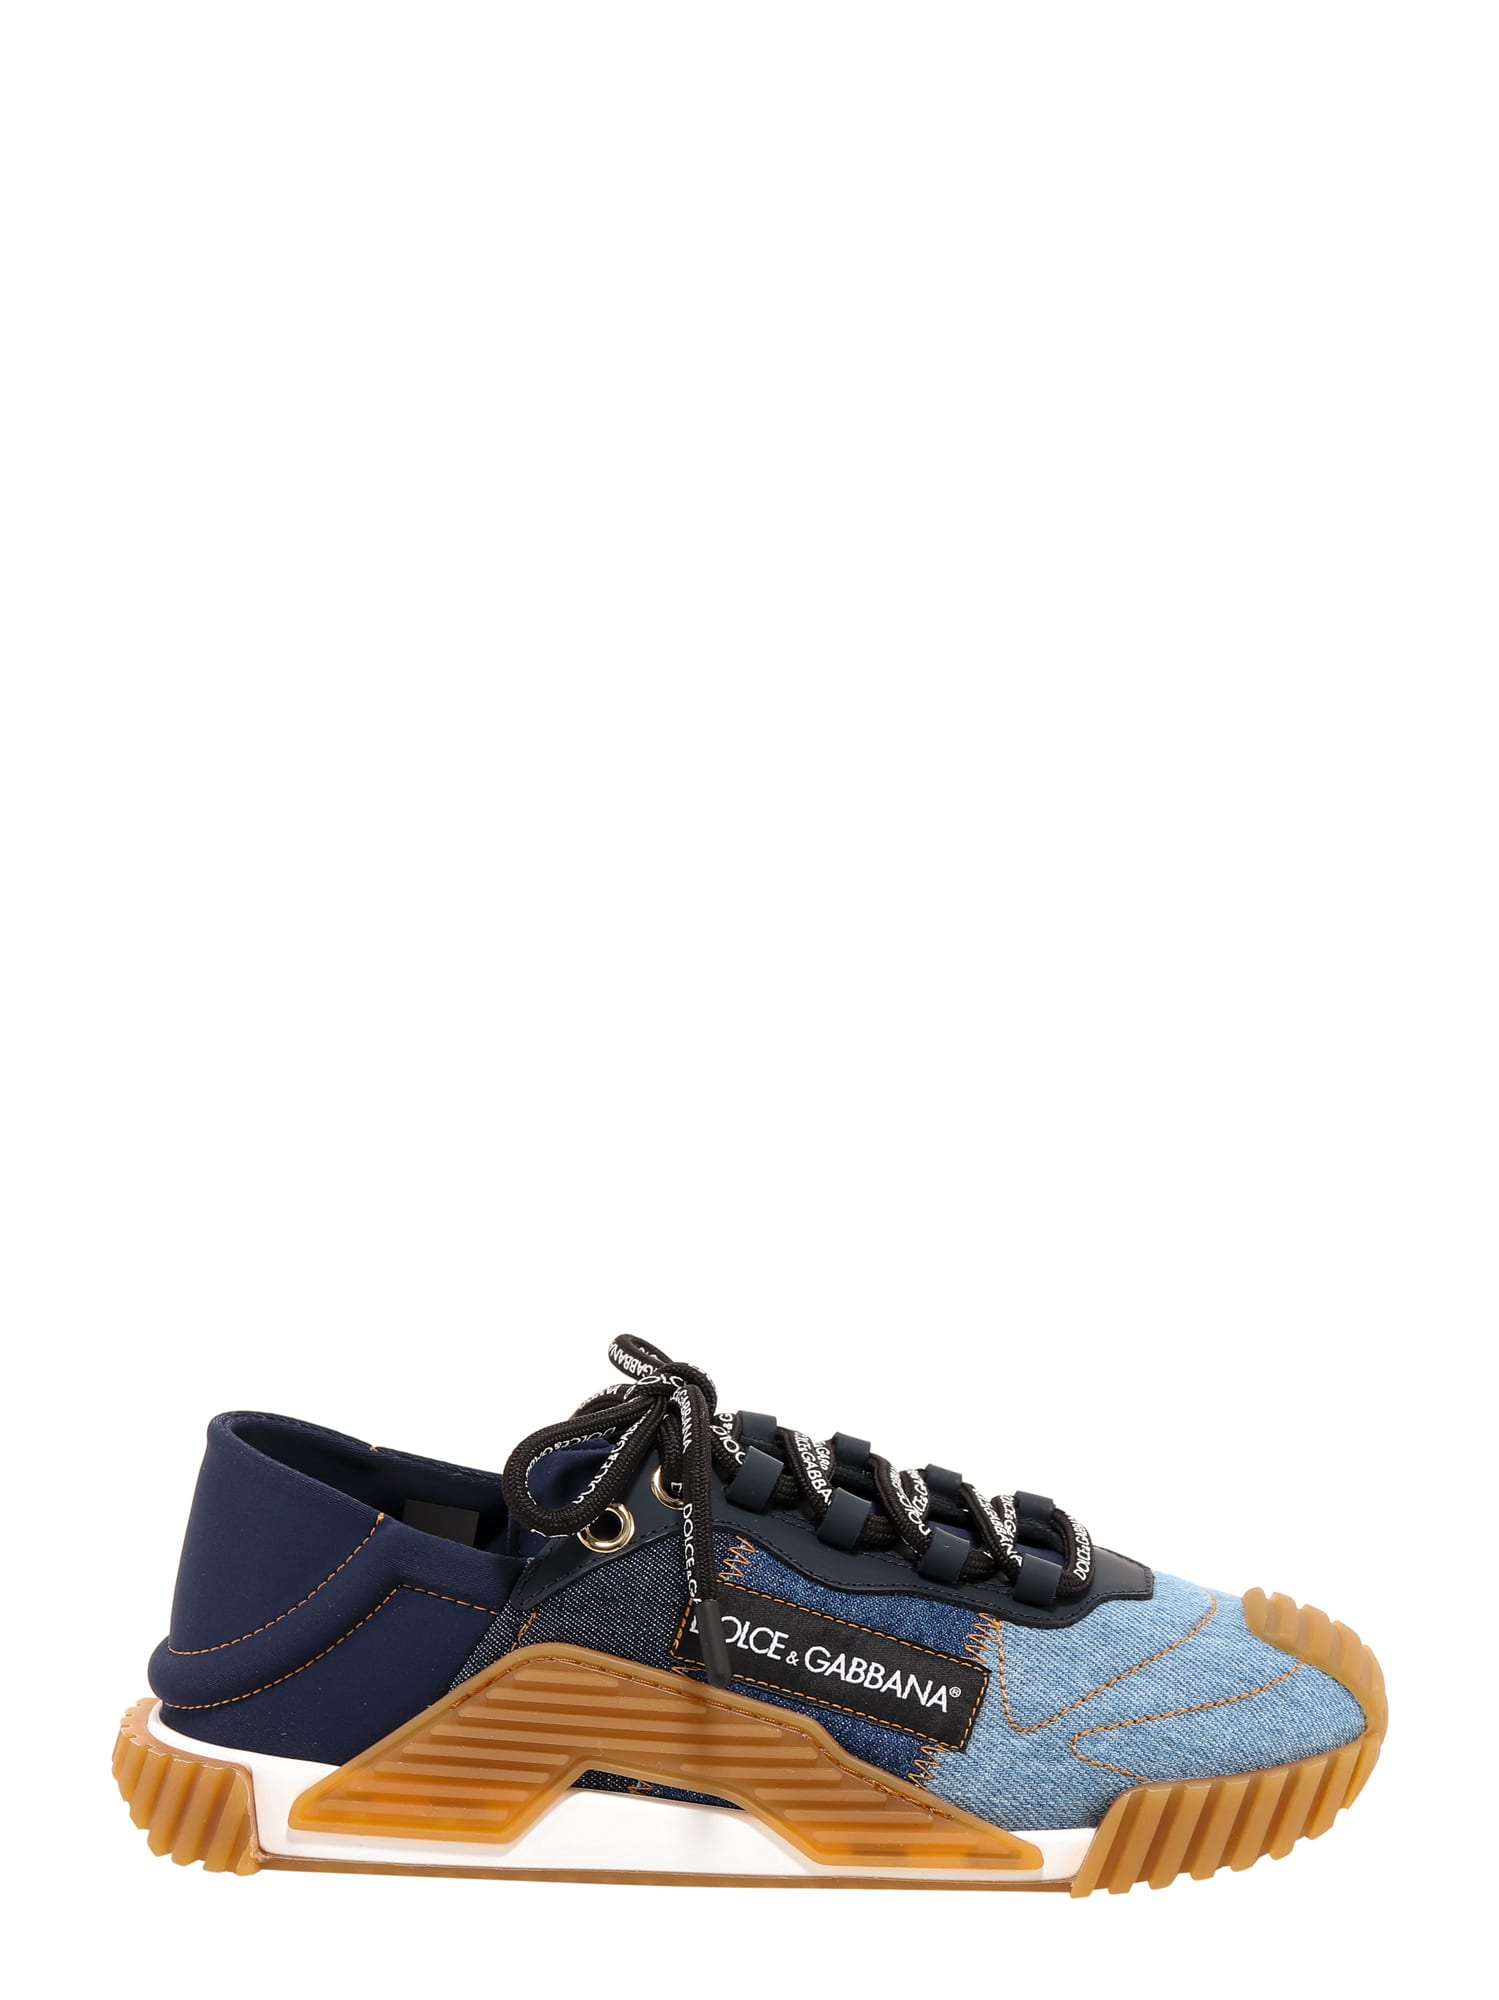 Dolce & Gabbana Sneakers NS1 SNEAKERS